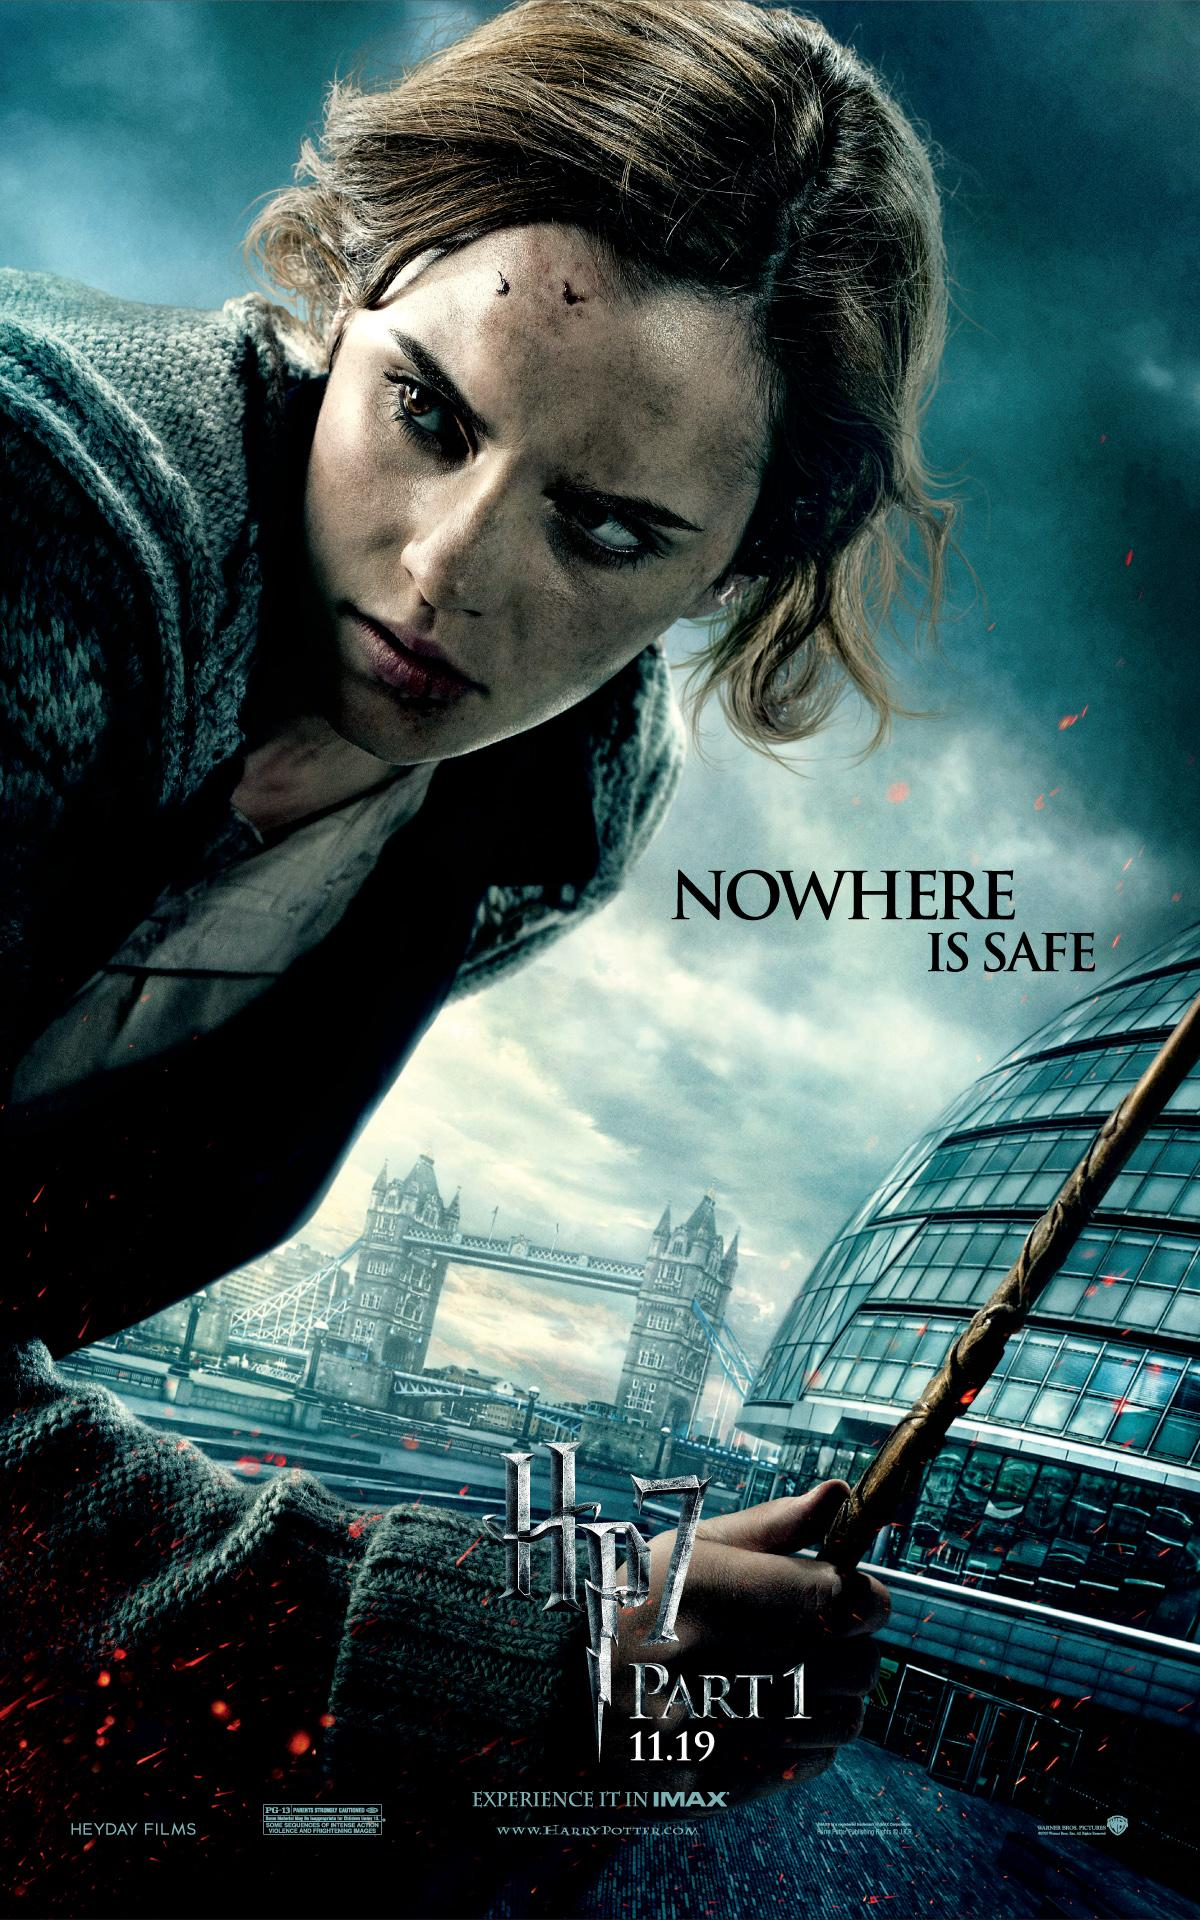 'Deathly Hallows: Part 1' Hermione poster